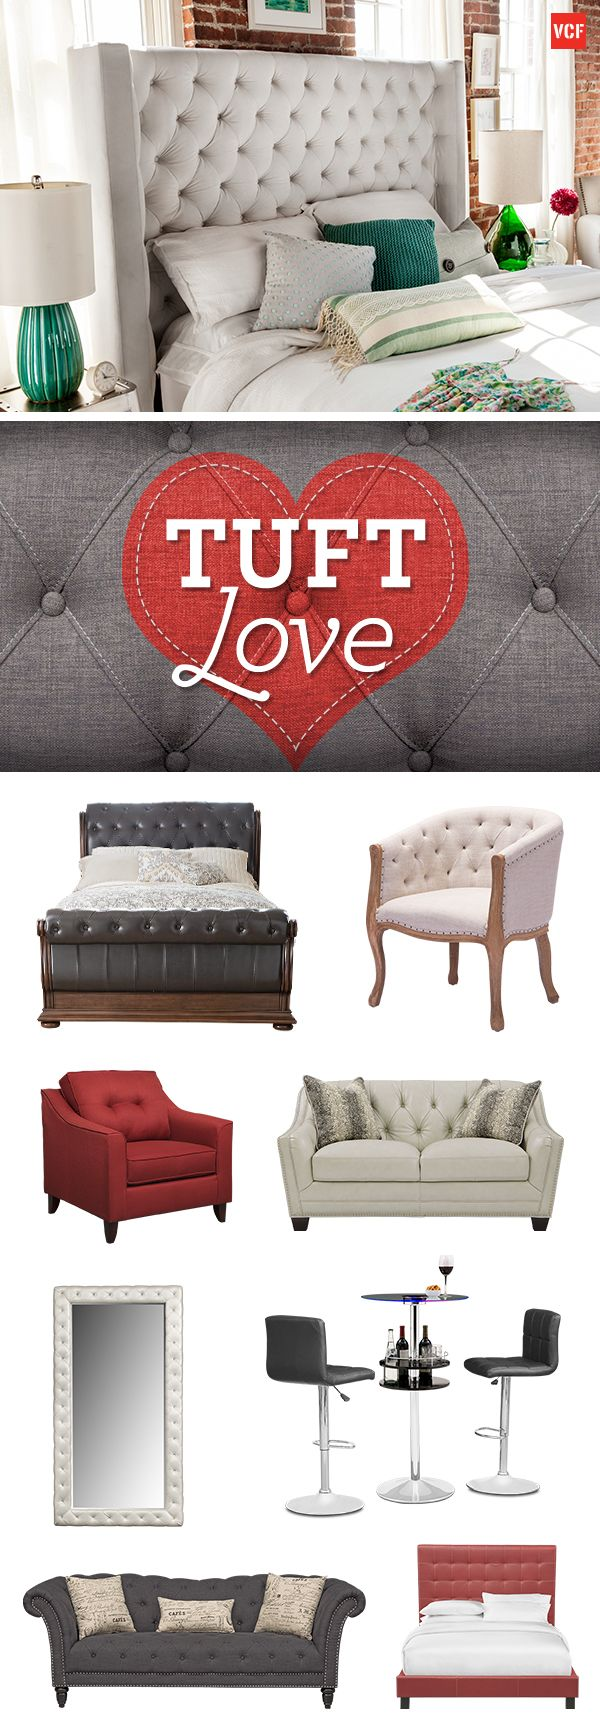 Find all the plush and luxuriously tufted furniture youve been looking for with the